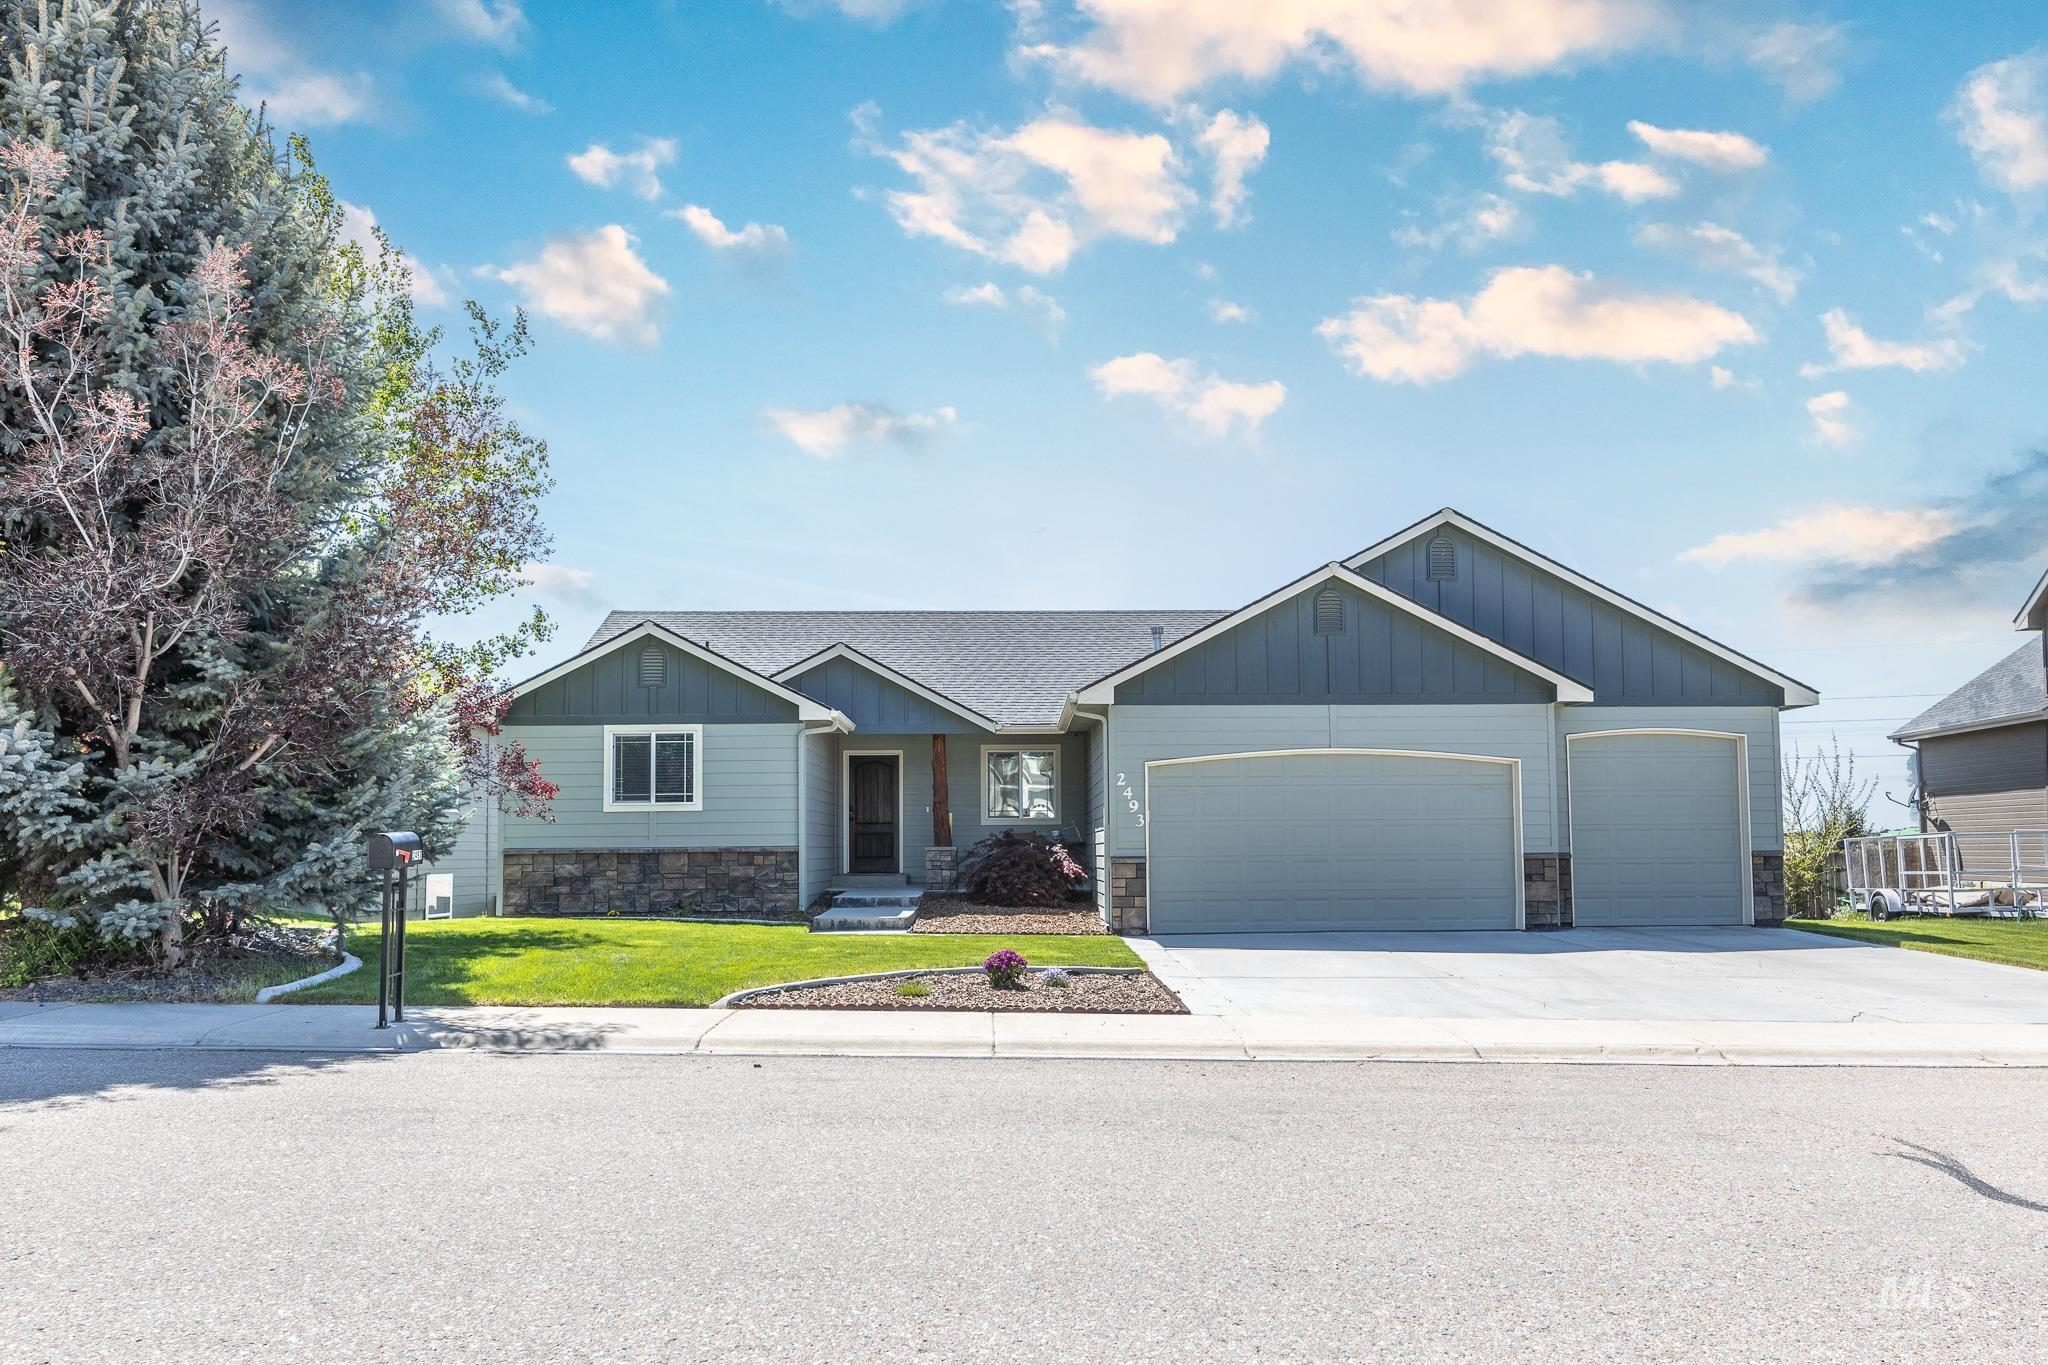 2493 S Skyview Dr Property Photo - Nampa, ID real estate listing